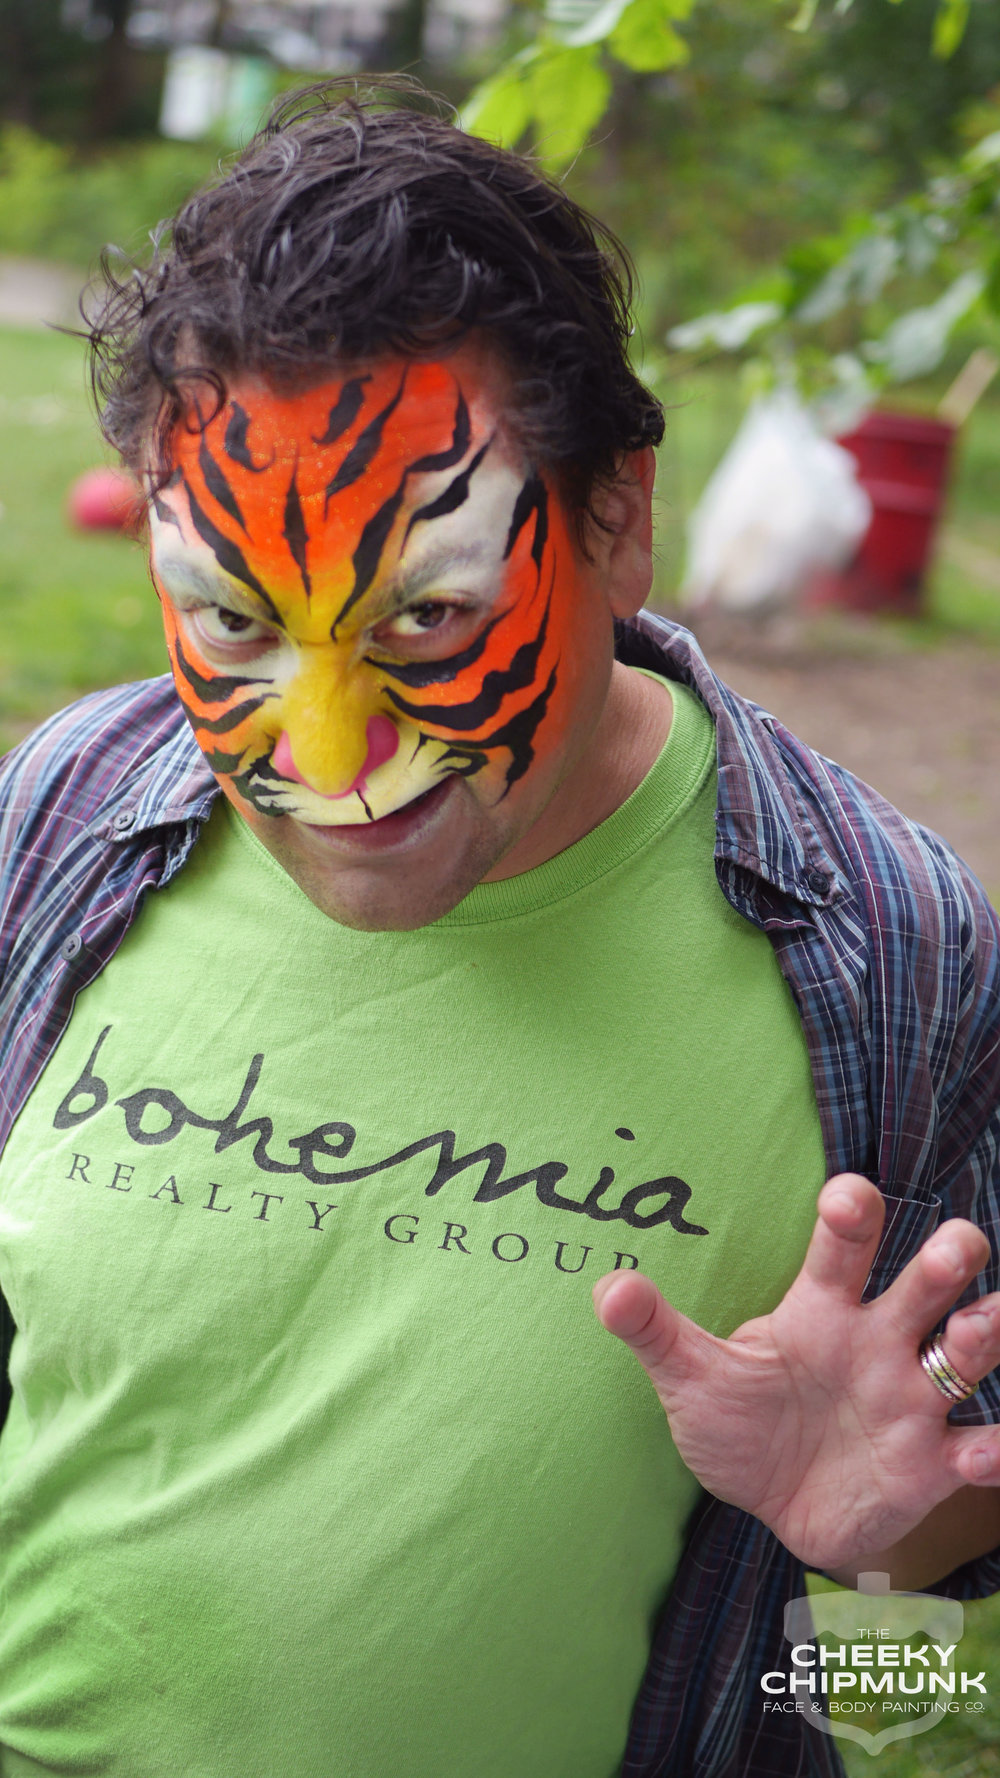 dave tiger bohemia realty field day 2017.jpg